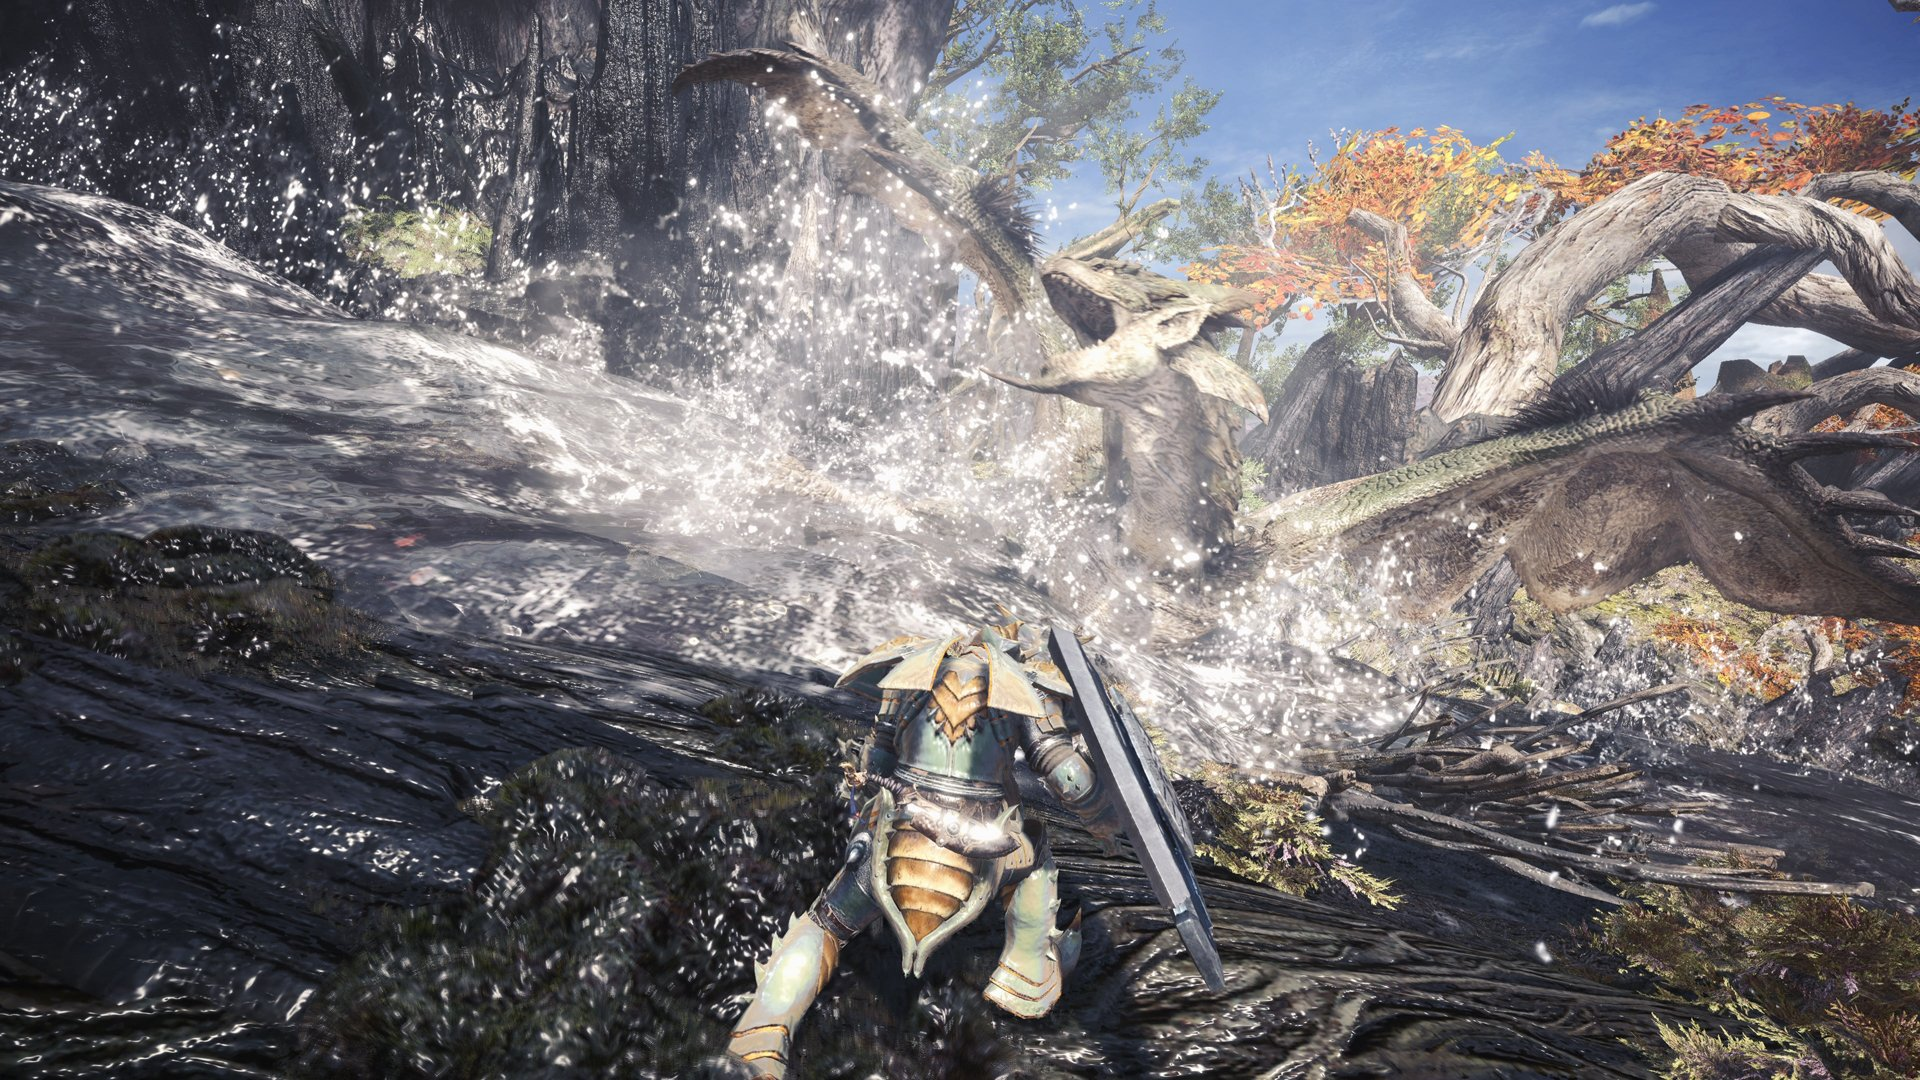 monster hunter world combat screenshot